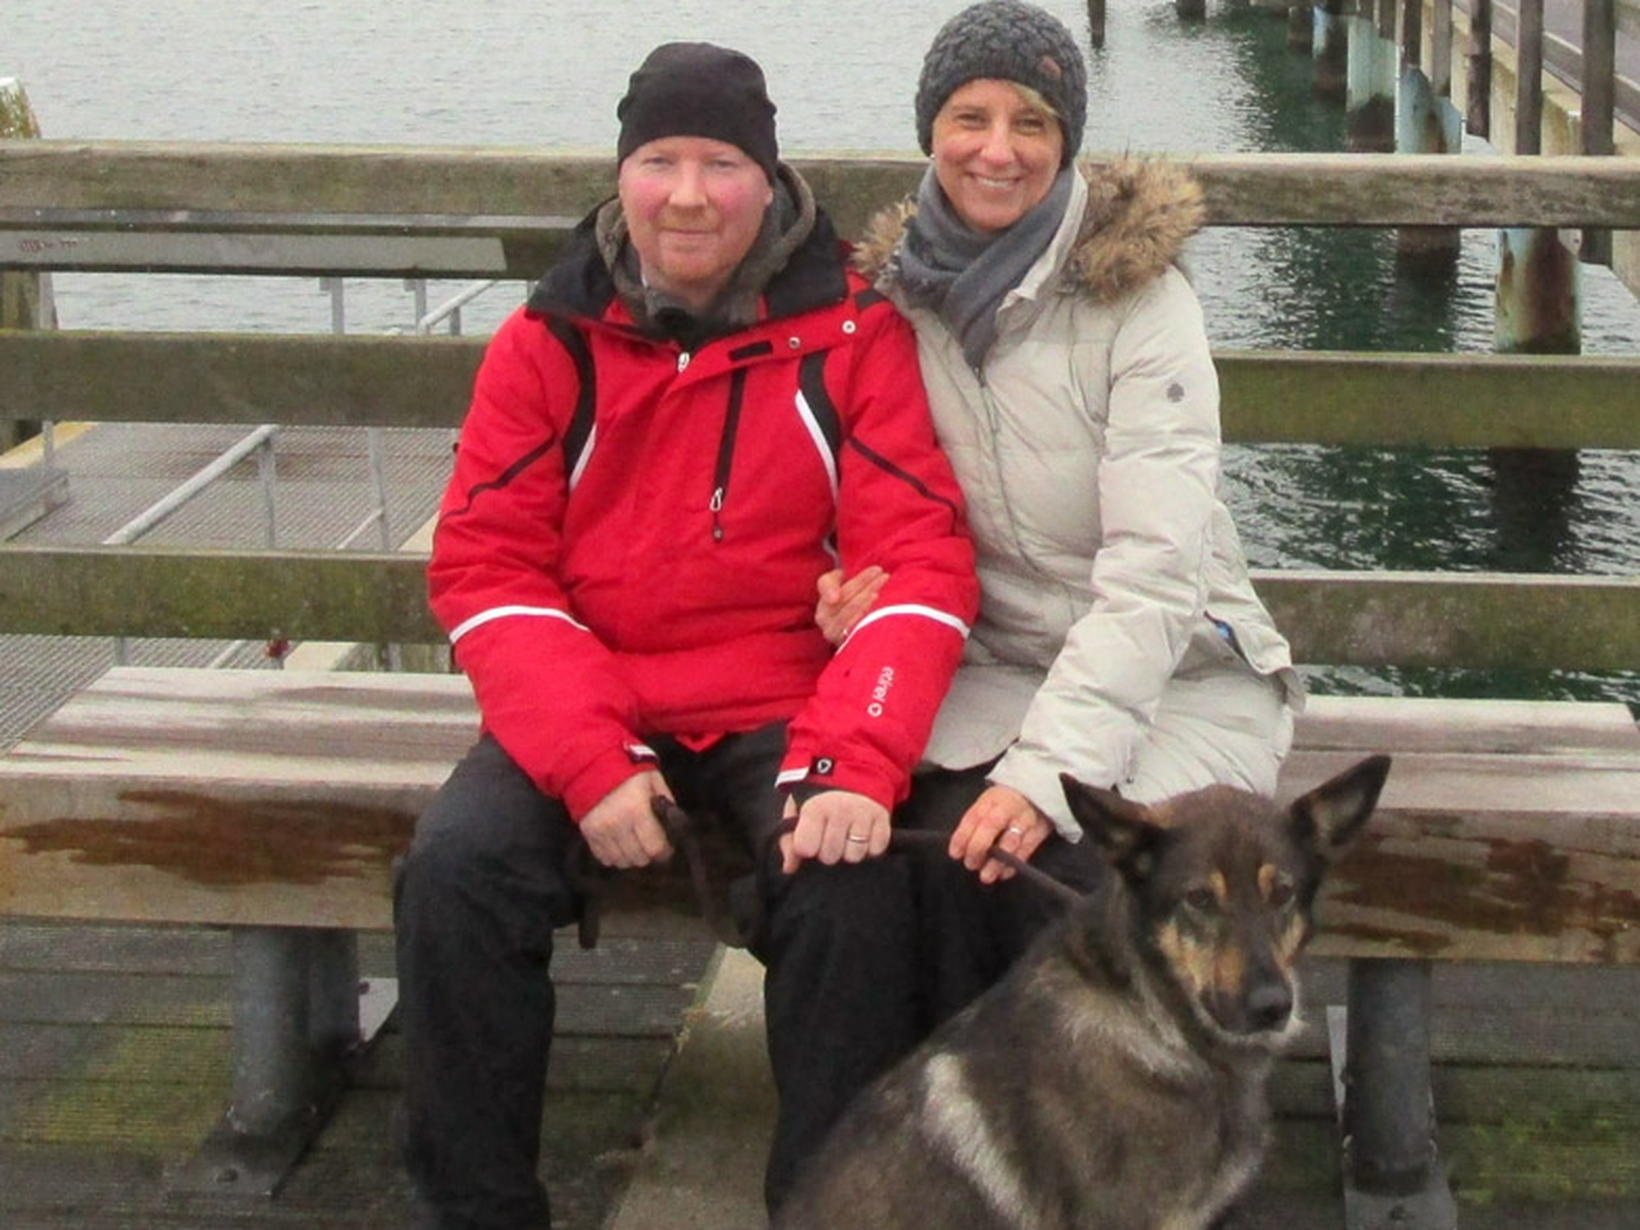 Sandra & Thorsten from Lüneburg, Germany